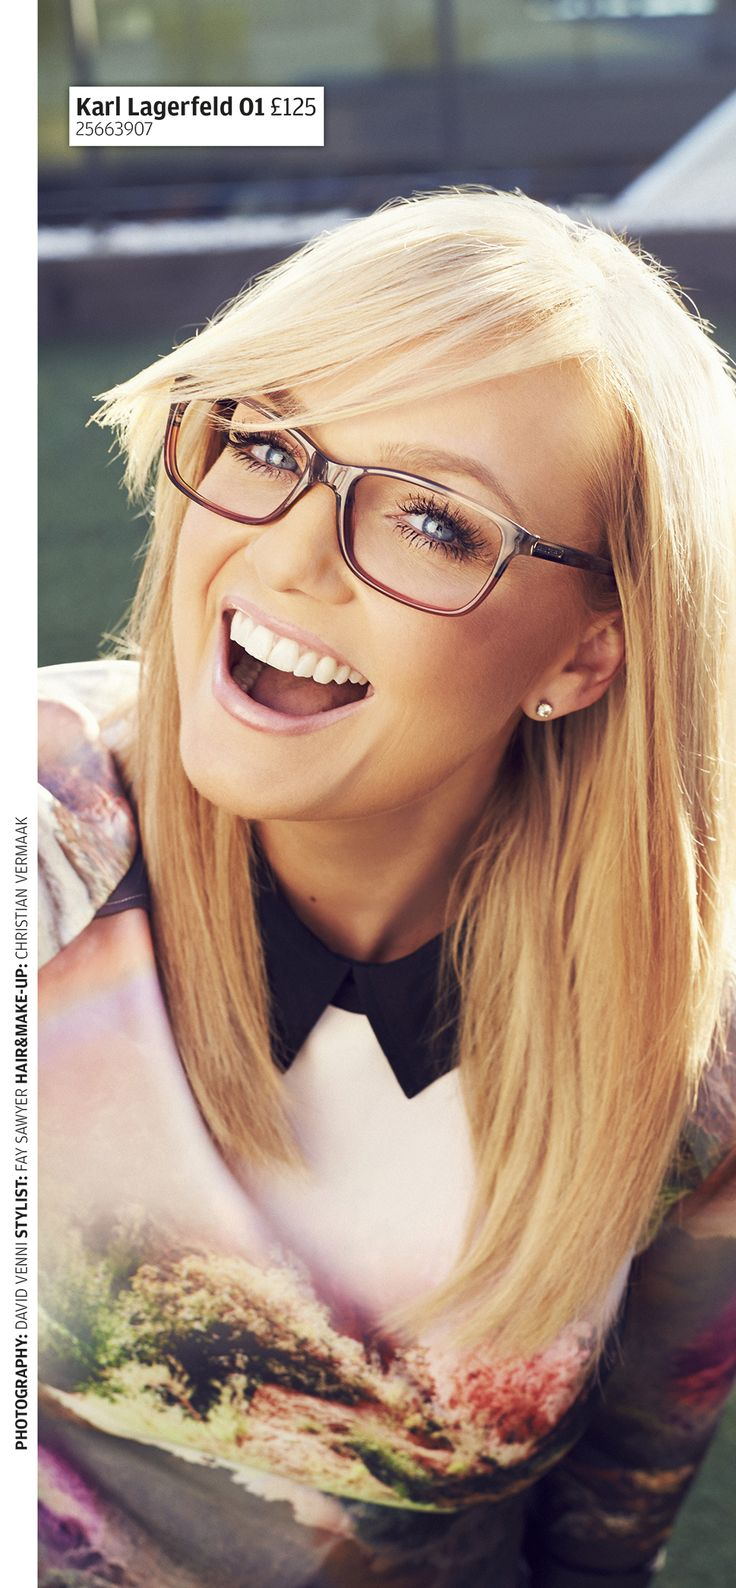 Emma Bunton in Karl Lagerfeld 01 by Specsavers.